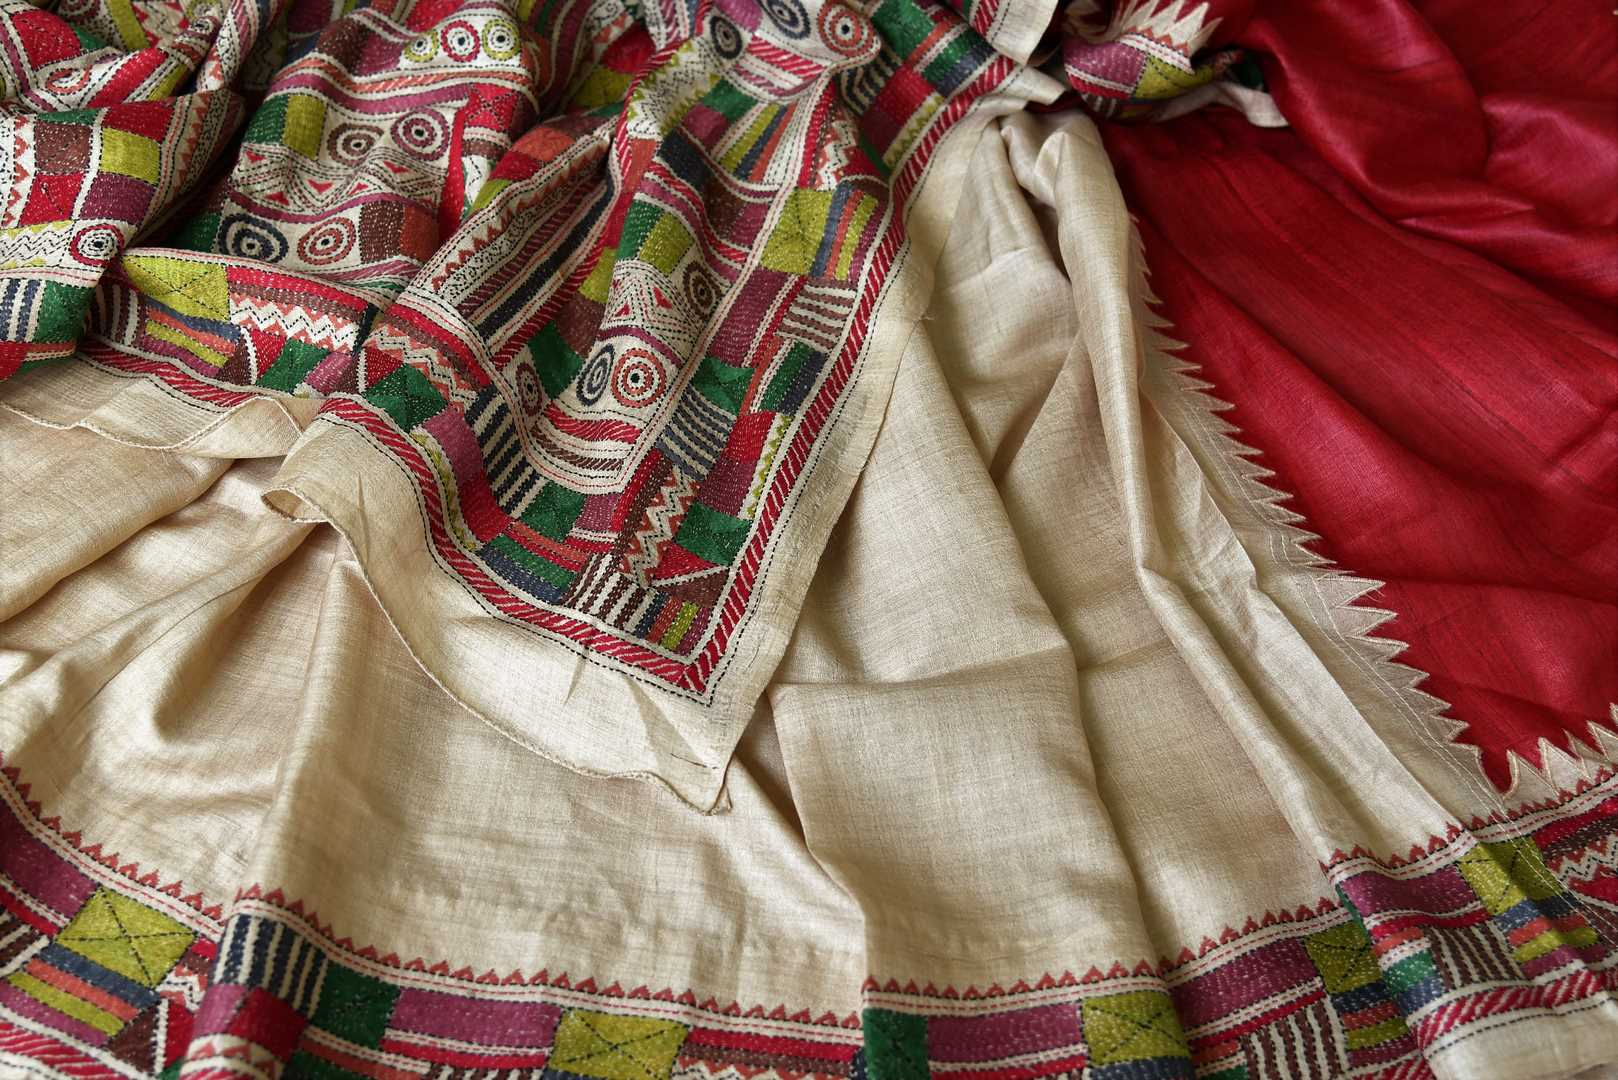 Buy beige and red silk saree online in USA with multicolor kantha work border. Make special occasions even more special with your captivating traditional style in Banarasi sarees from Pure Elegance Indian clothing in USA.-details